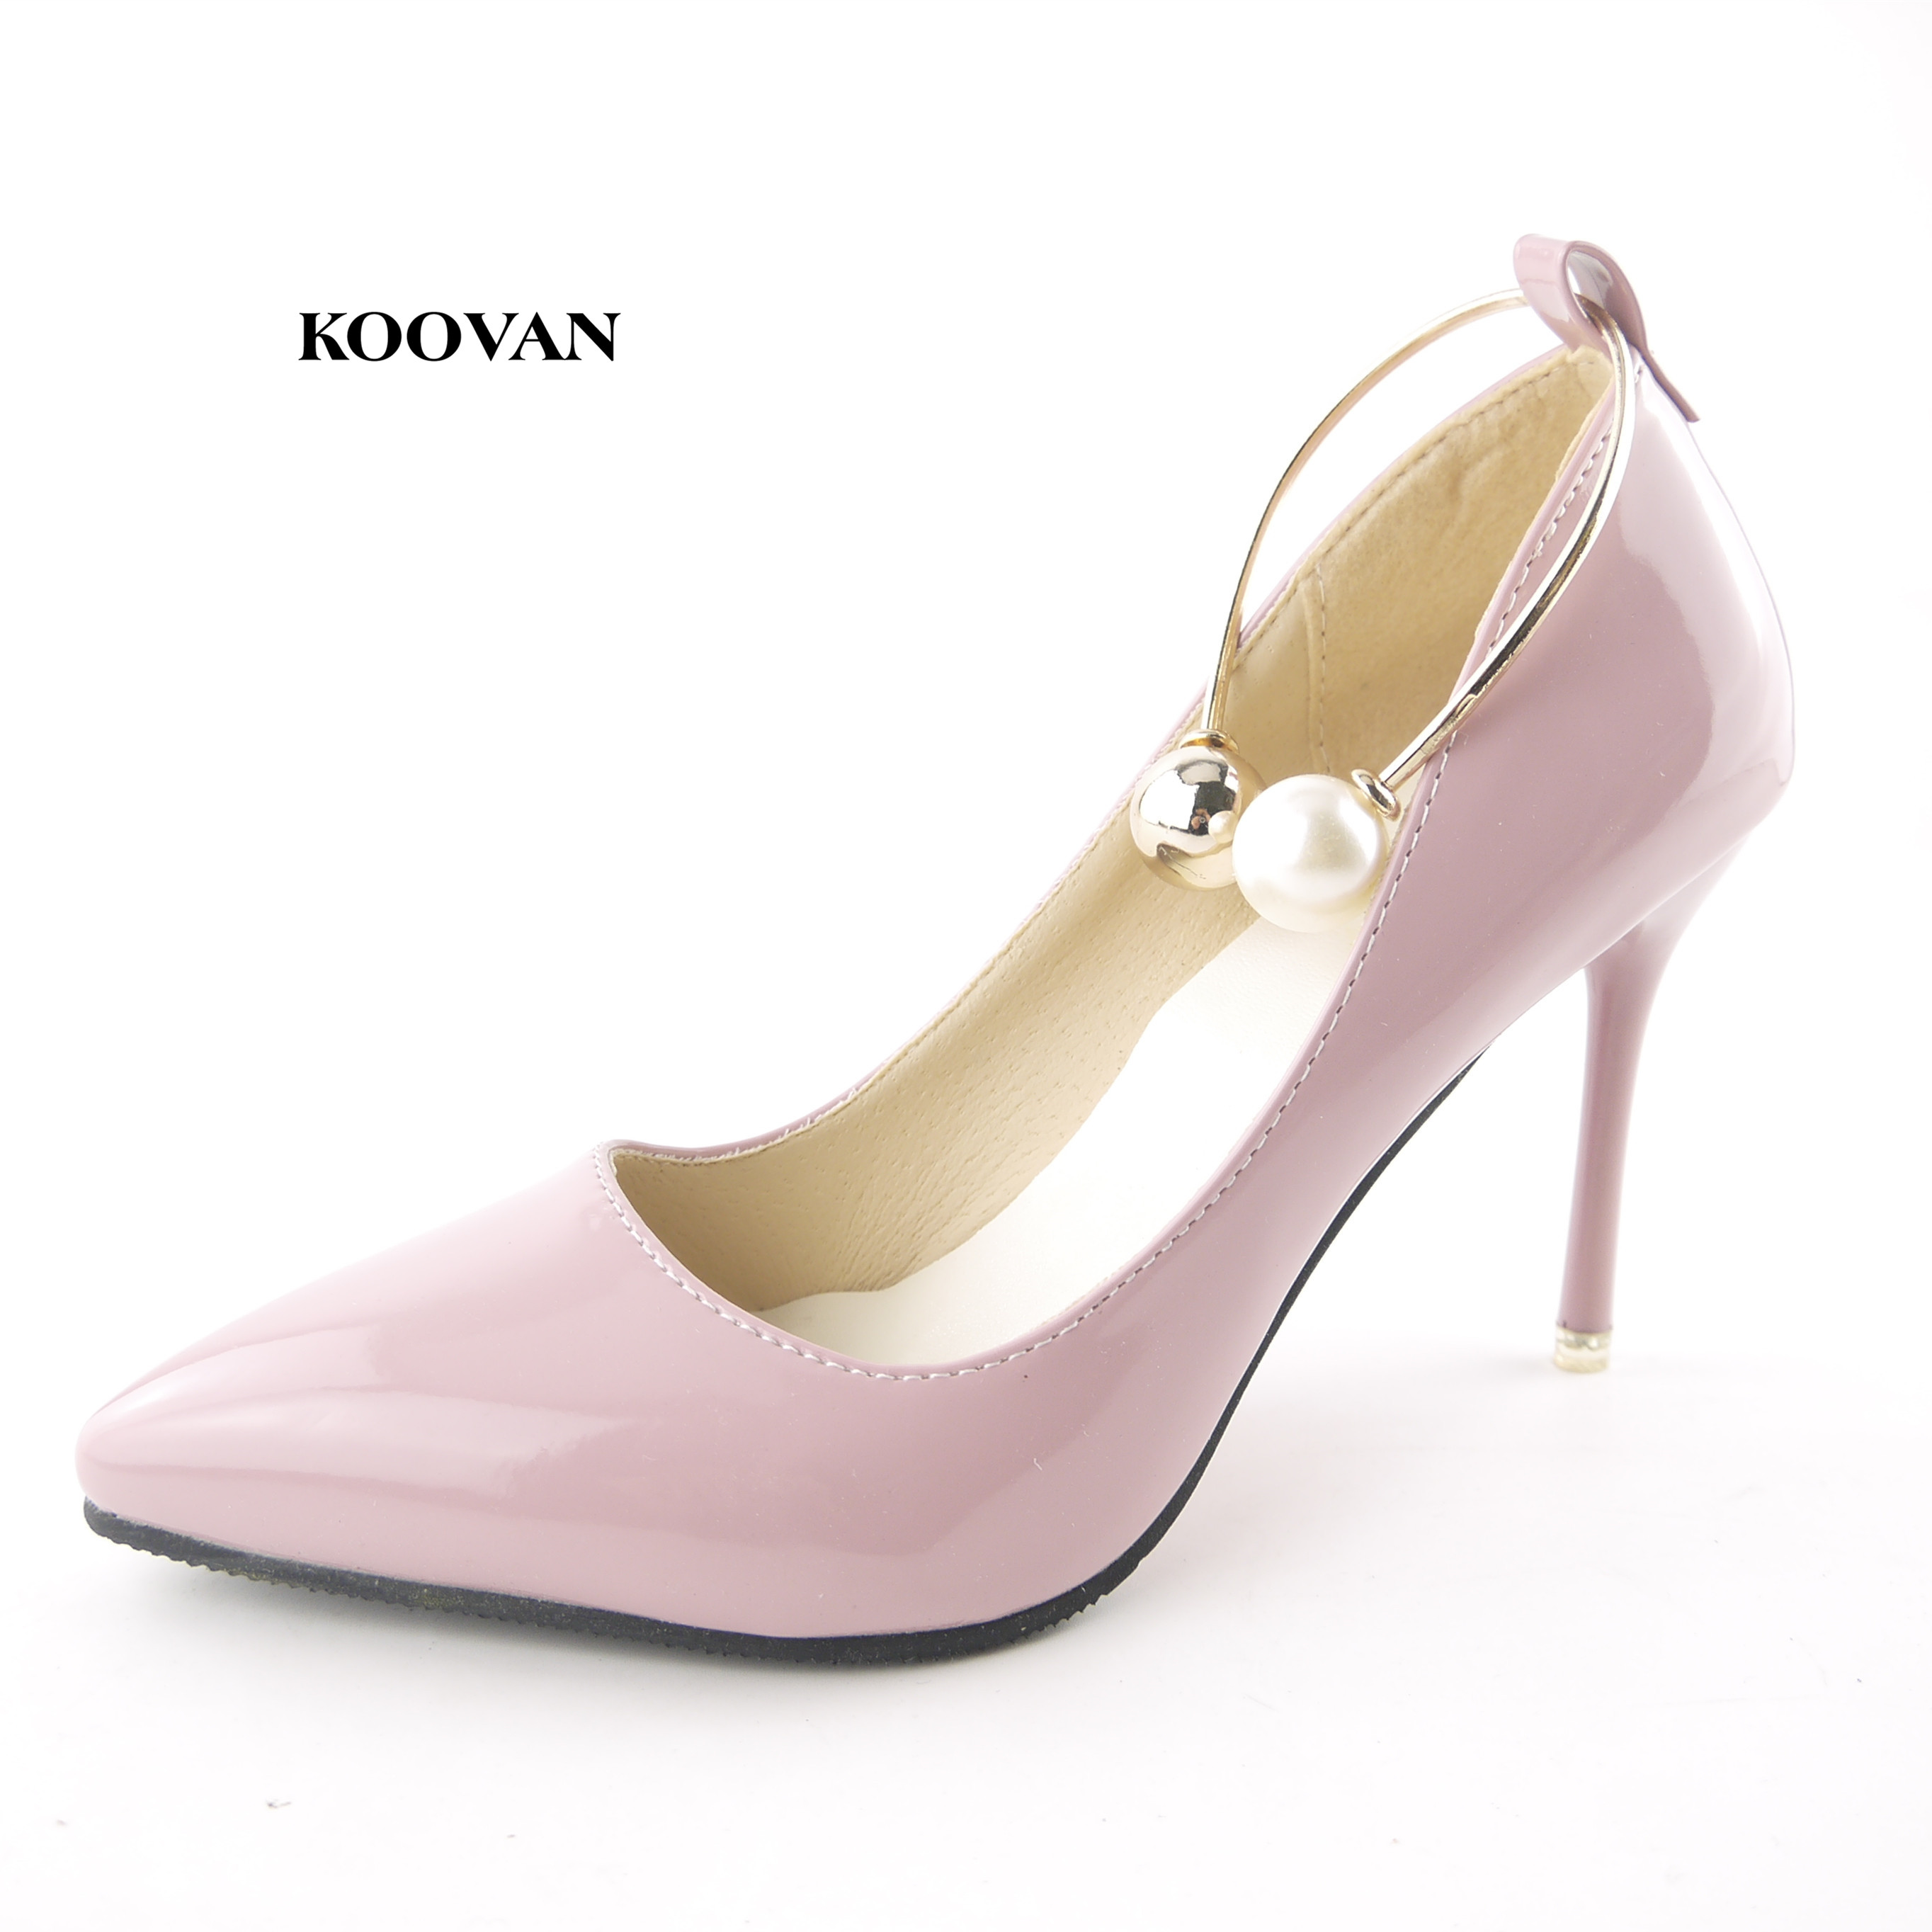 Koovan Women Pumps 2018 Spring New Shallow Mouth Pointed Shoes Heel Pearl Buckle With High-heeled Ladies Shoes 2018 spring summer new women s pumps scrub sheepskin flowers rhinestone coarse high heel shallow mouth craft shoes